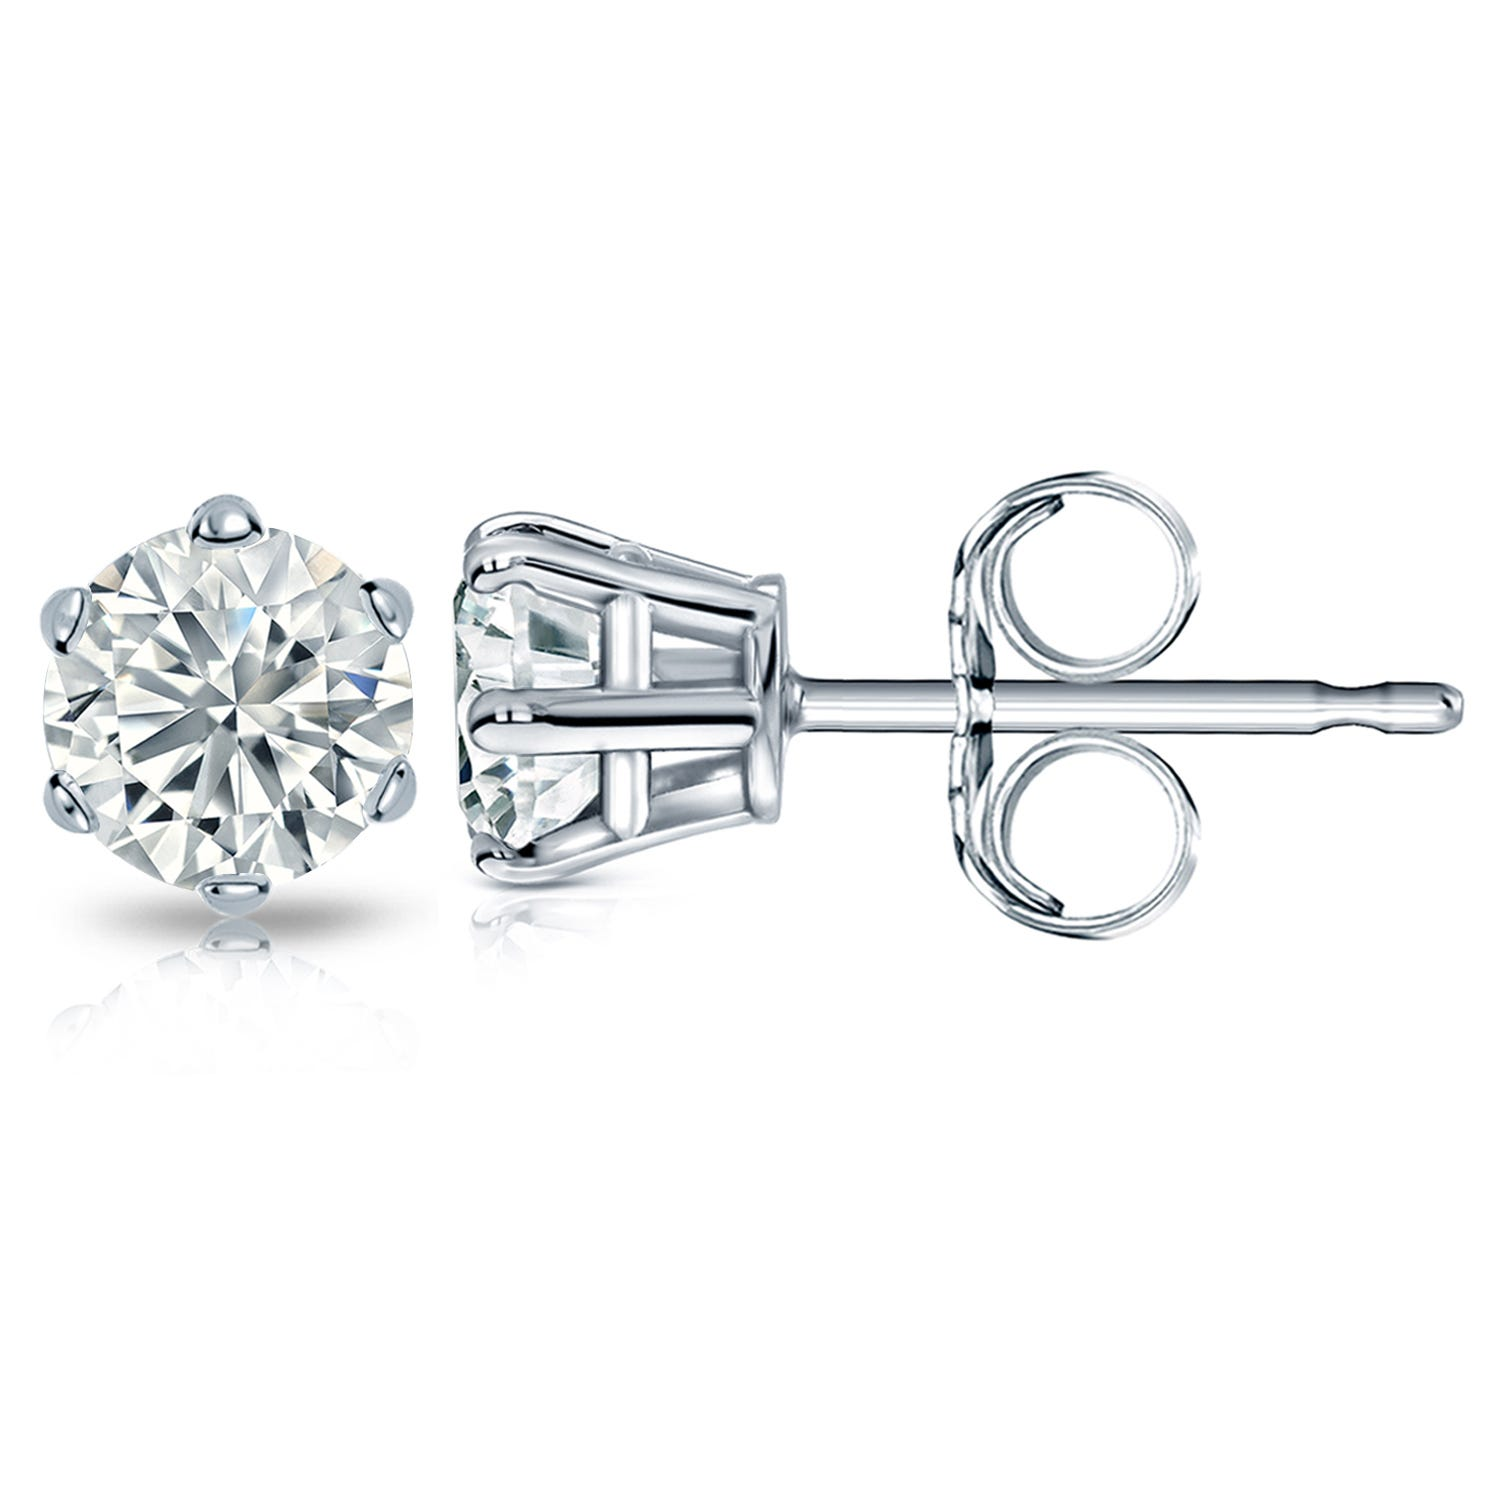 Round Diamond 2ctw. (IJ-I2) Solitaire Stud 6-Prong Earrings in 10K White Gold